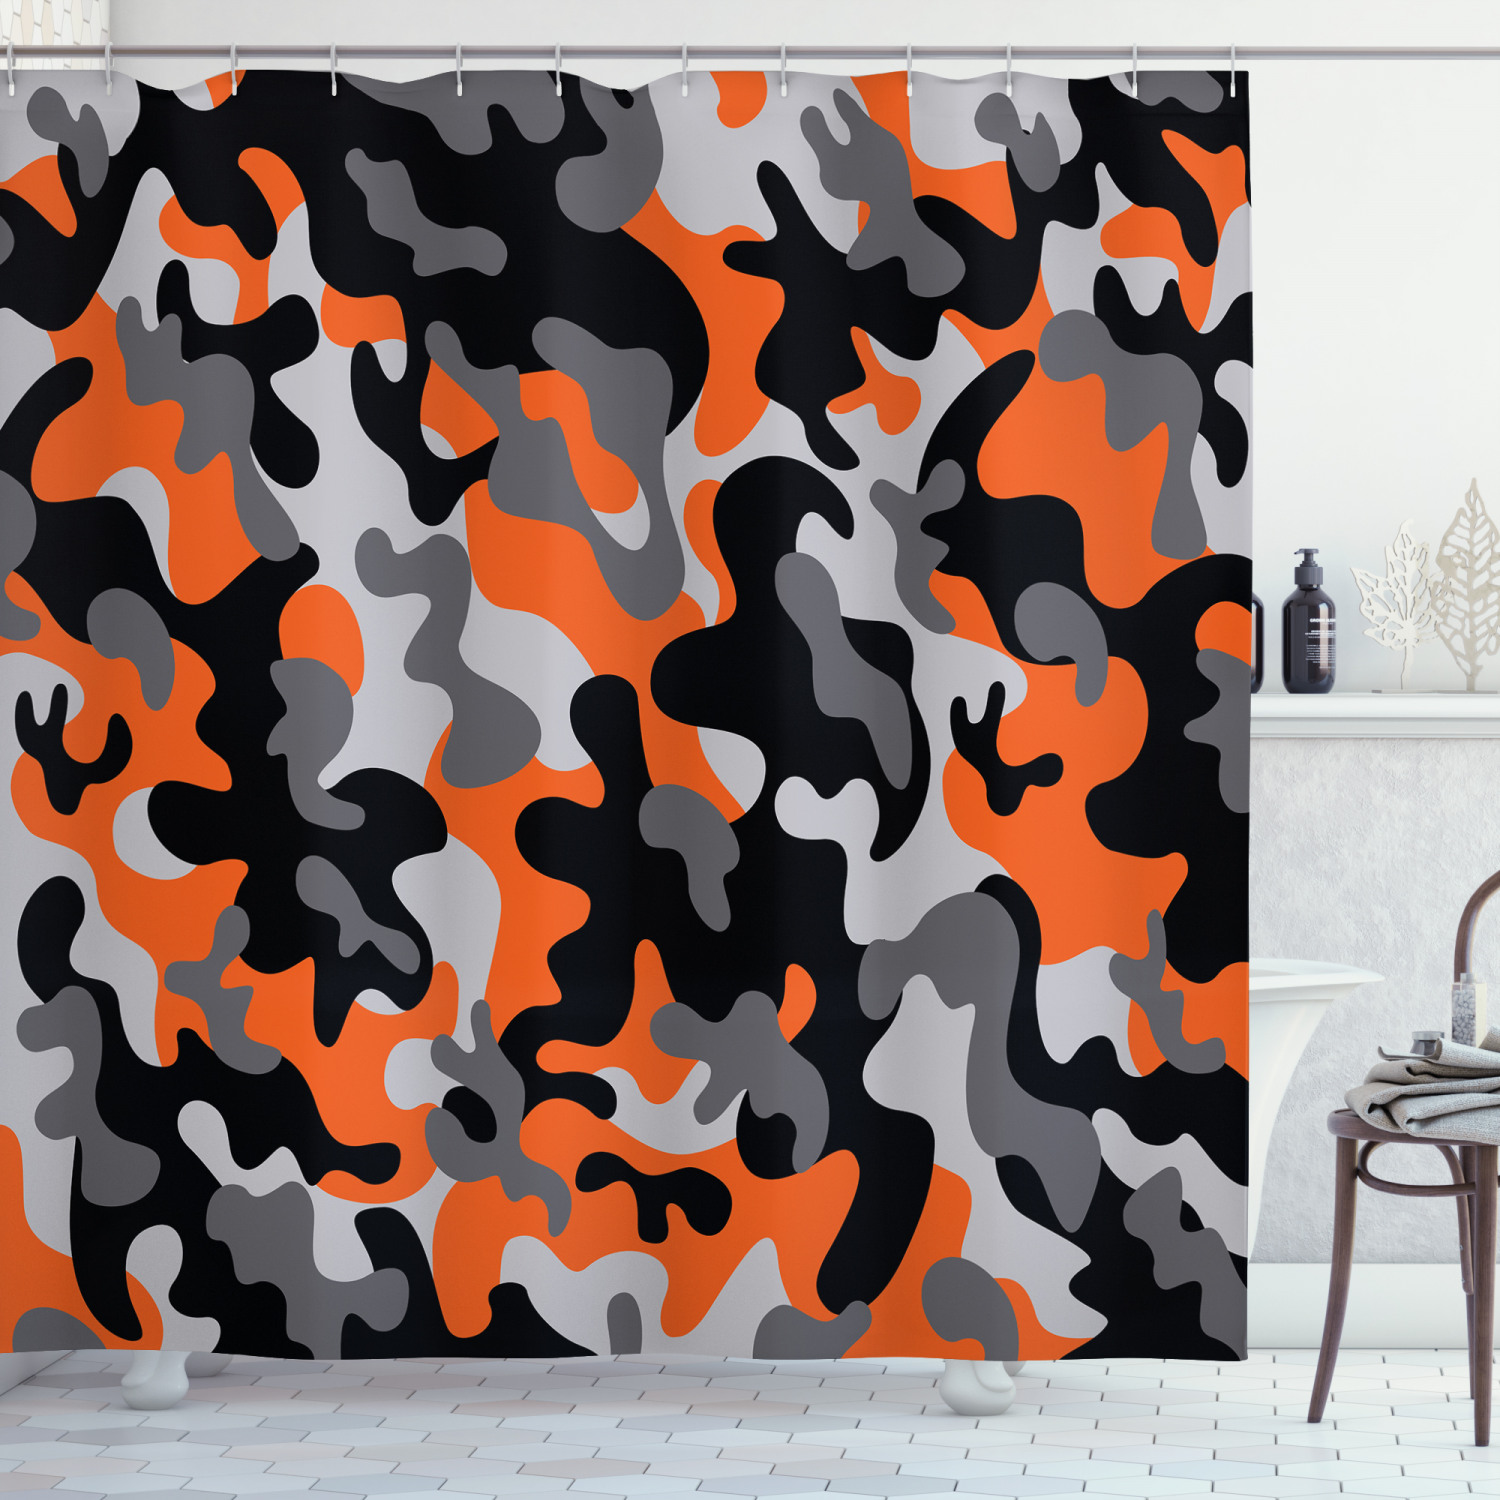 camo shower curtain vibrant artistic camouflage lattice like military service combat theme modern fabric bathroom set with hooks 69w x 84l inches